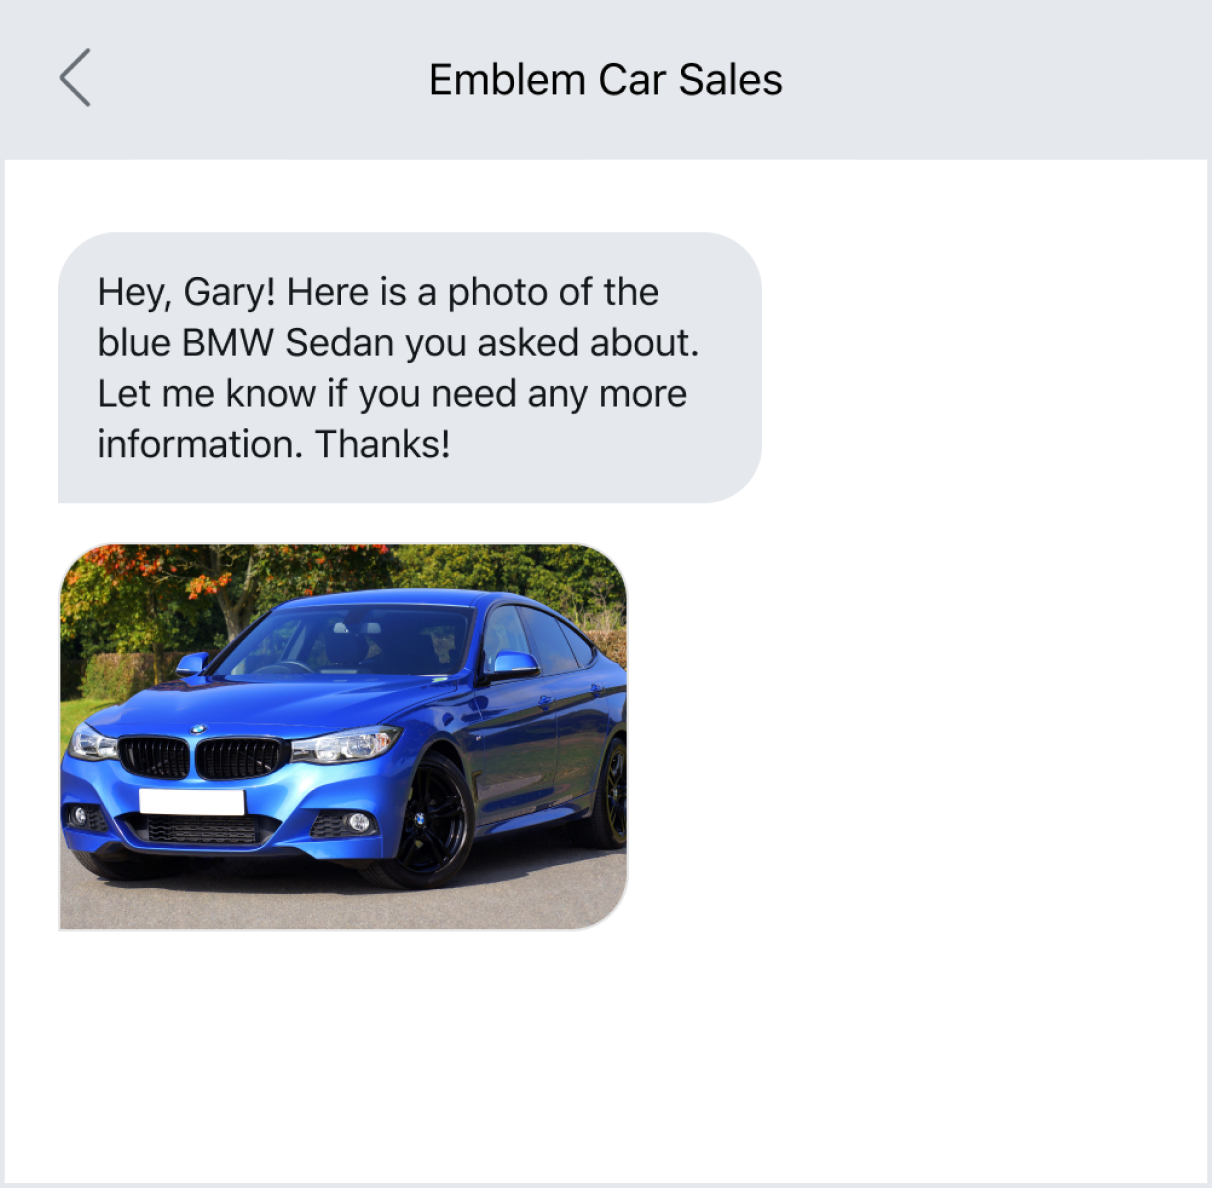 Sending a photo of a car to a potential buyer via text